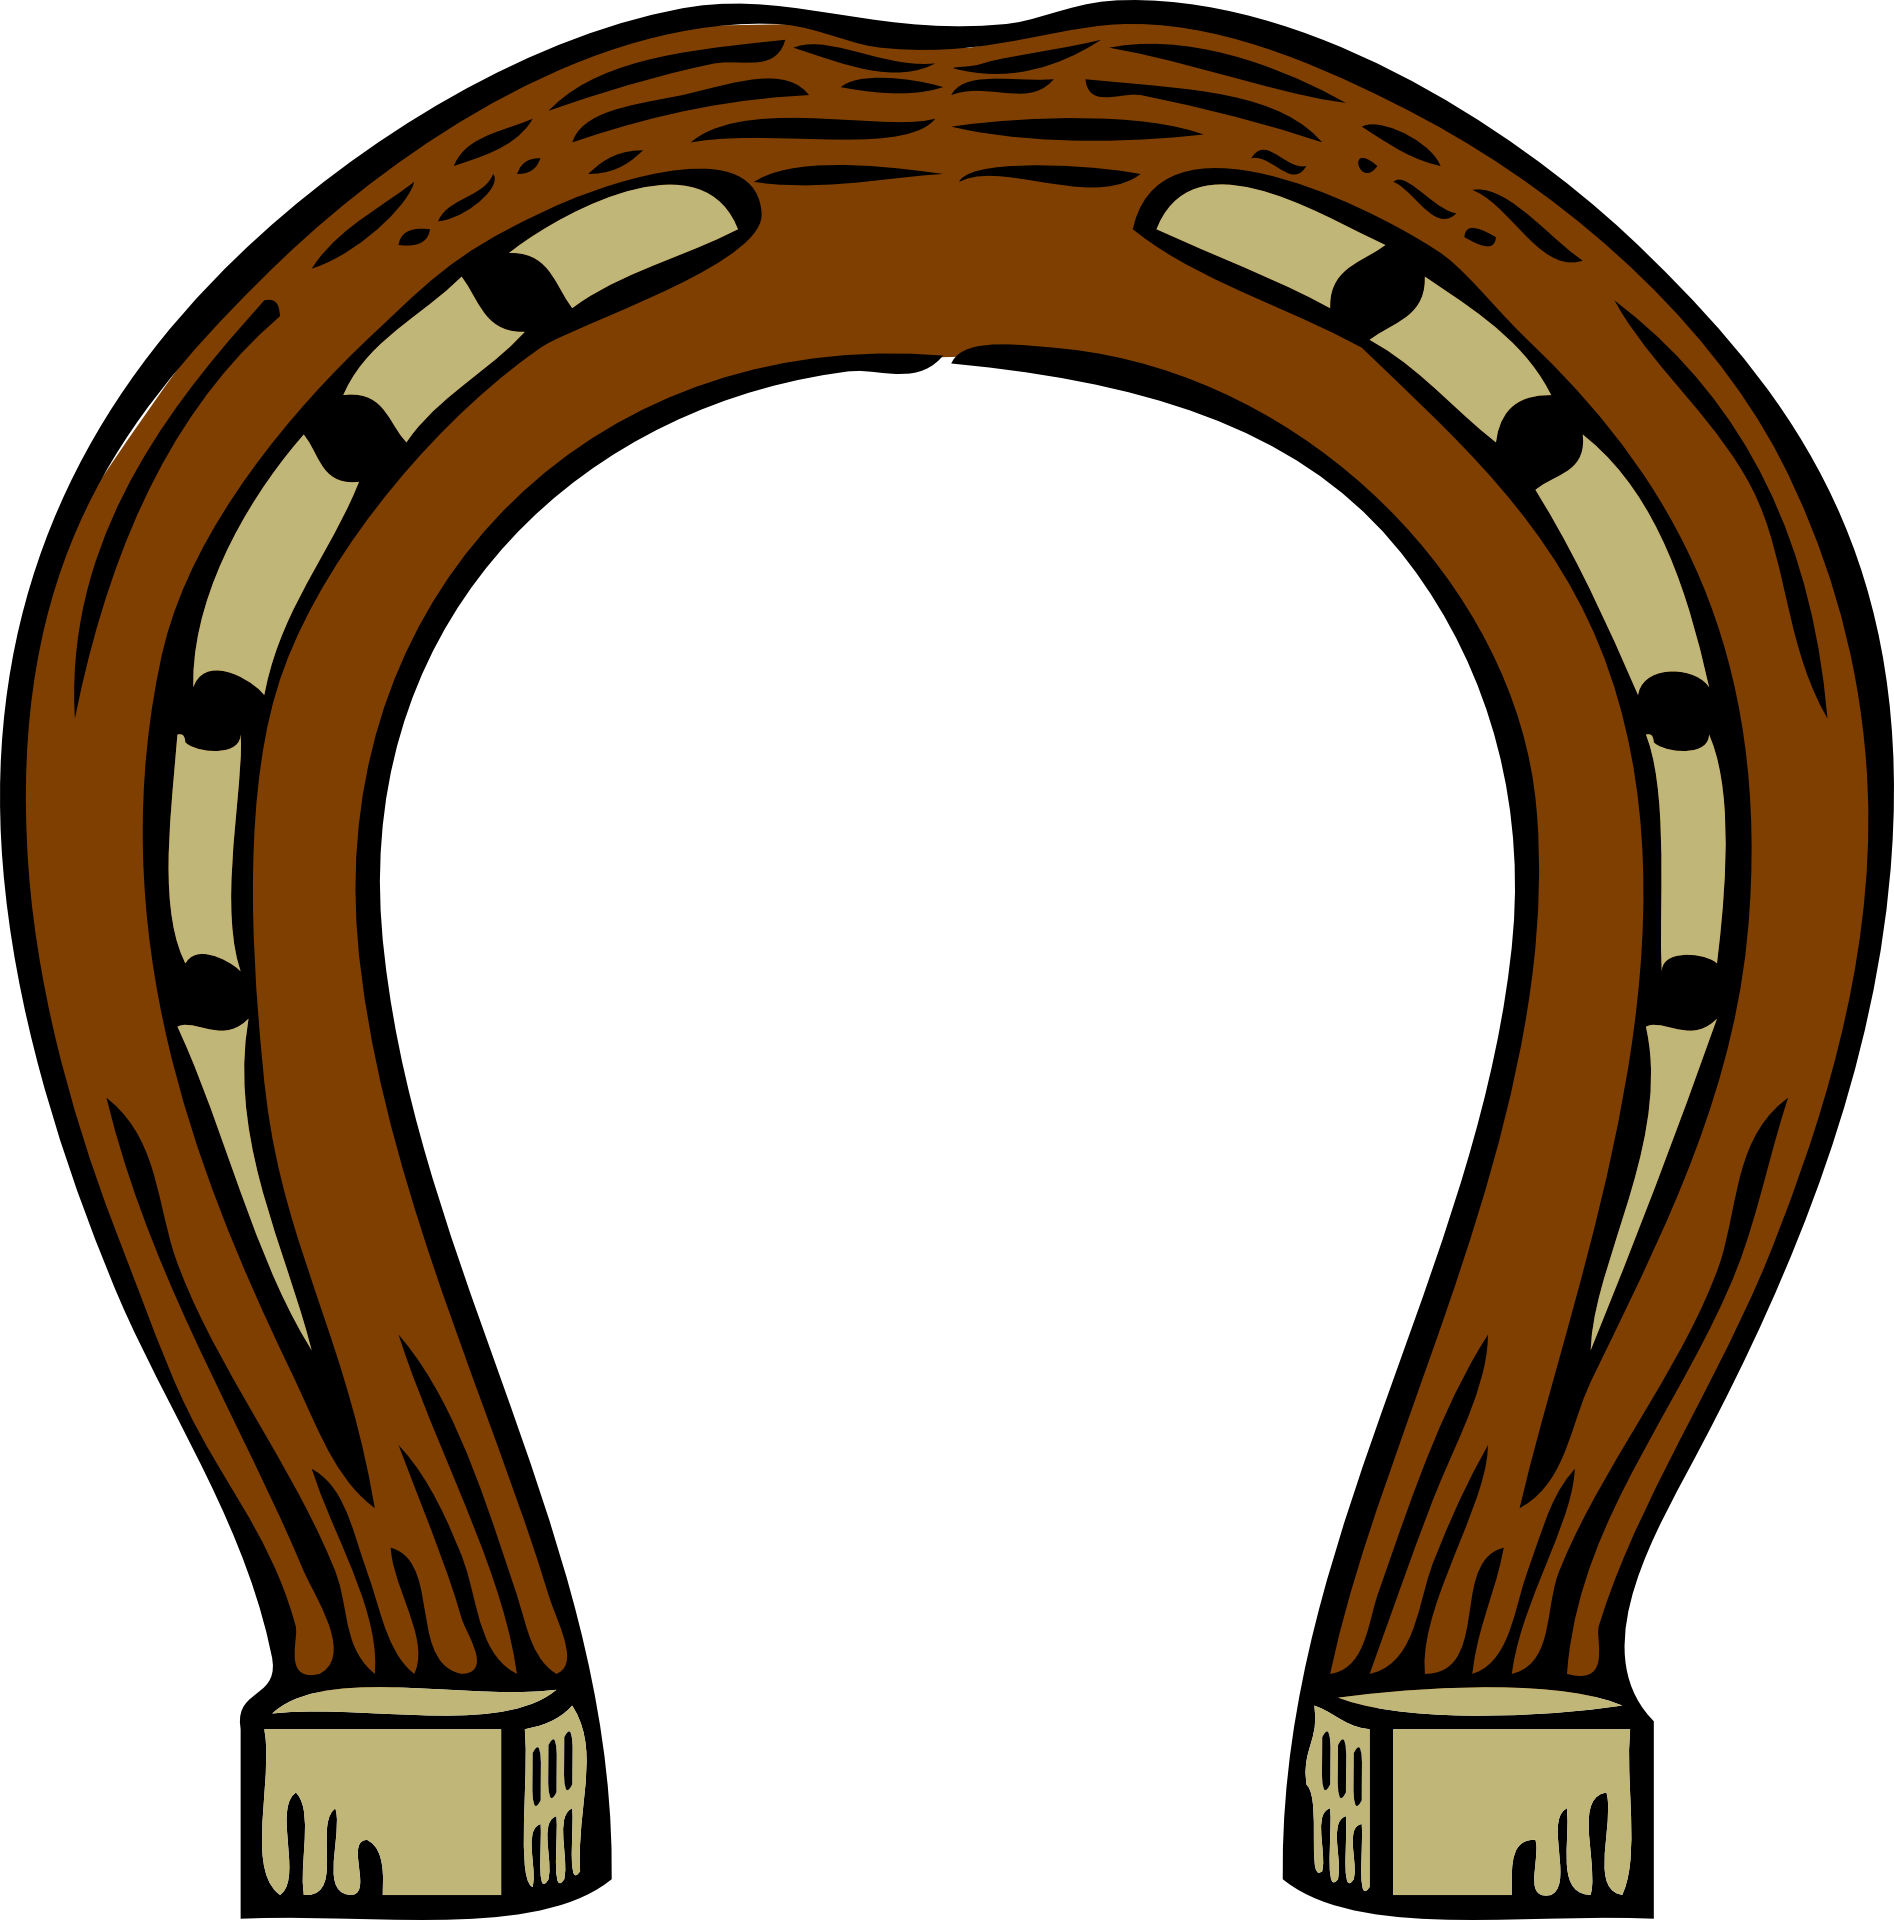 Horseshoe clip art brown. Clipart castle horse